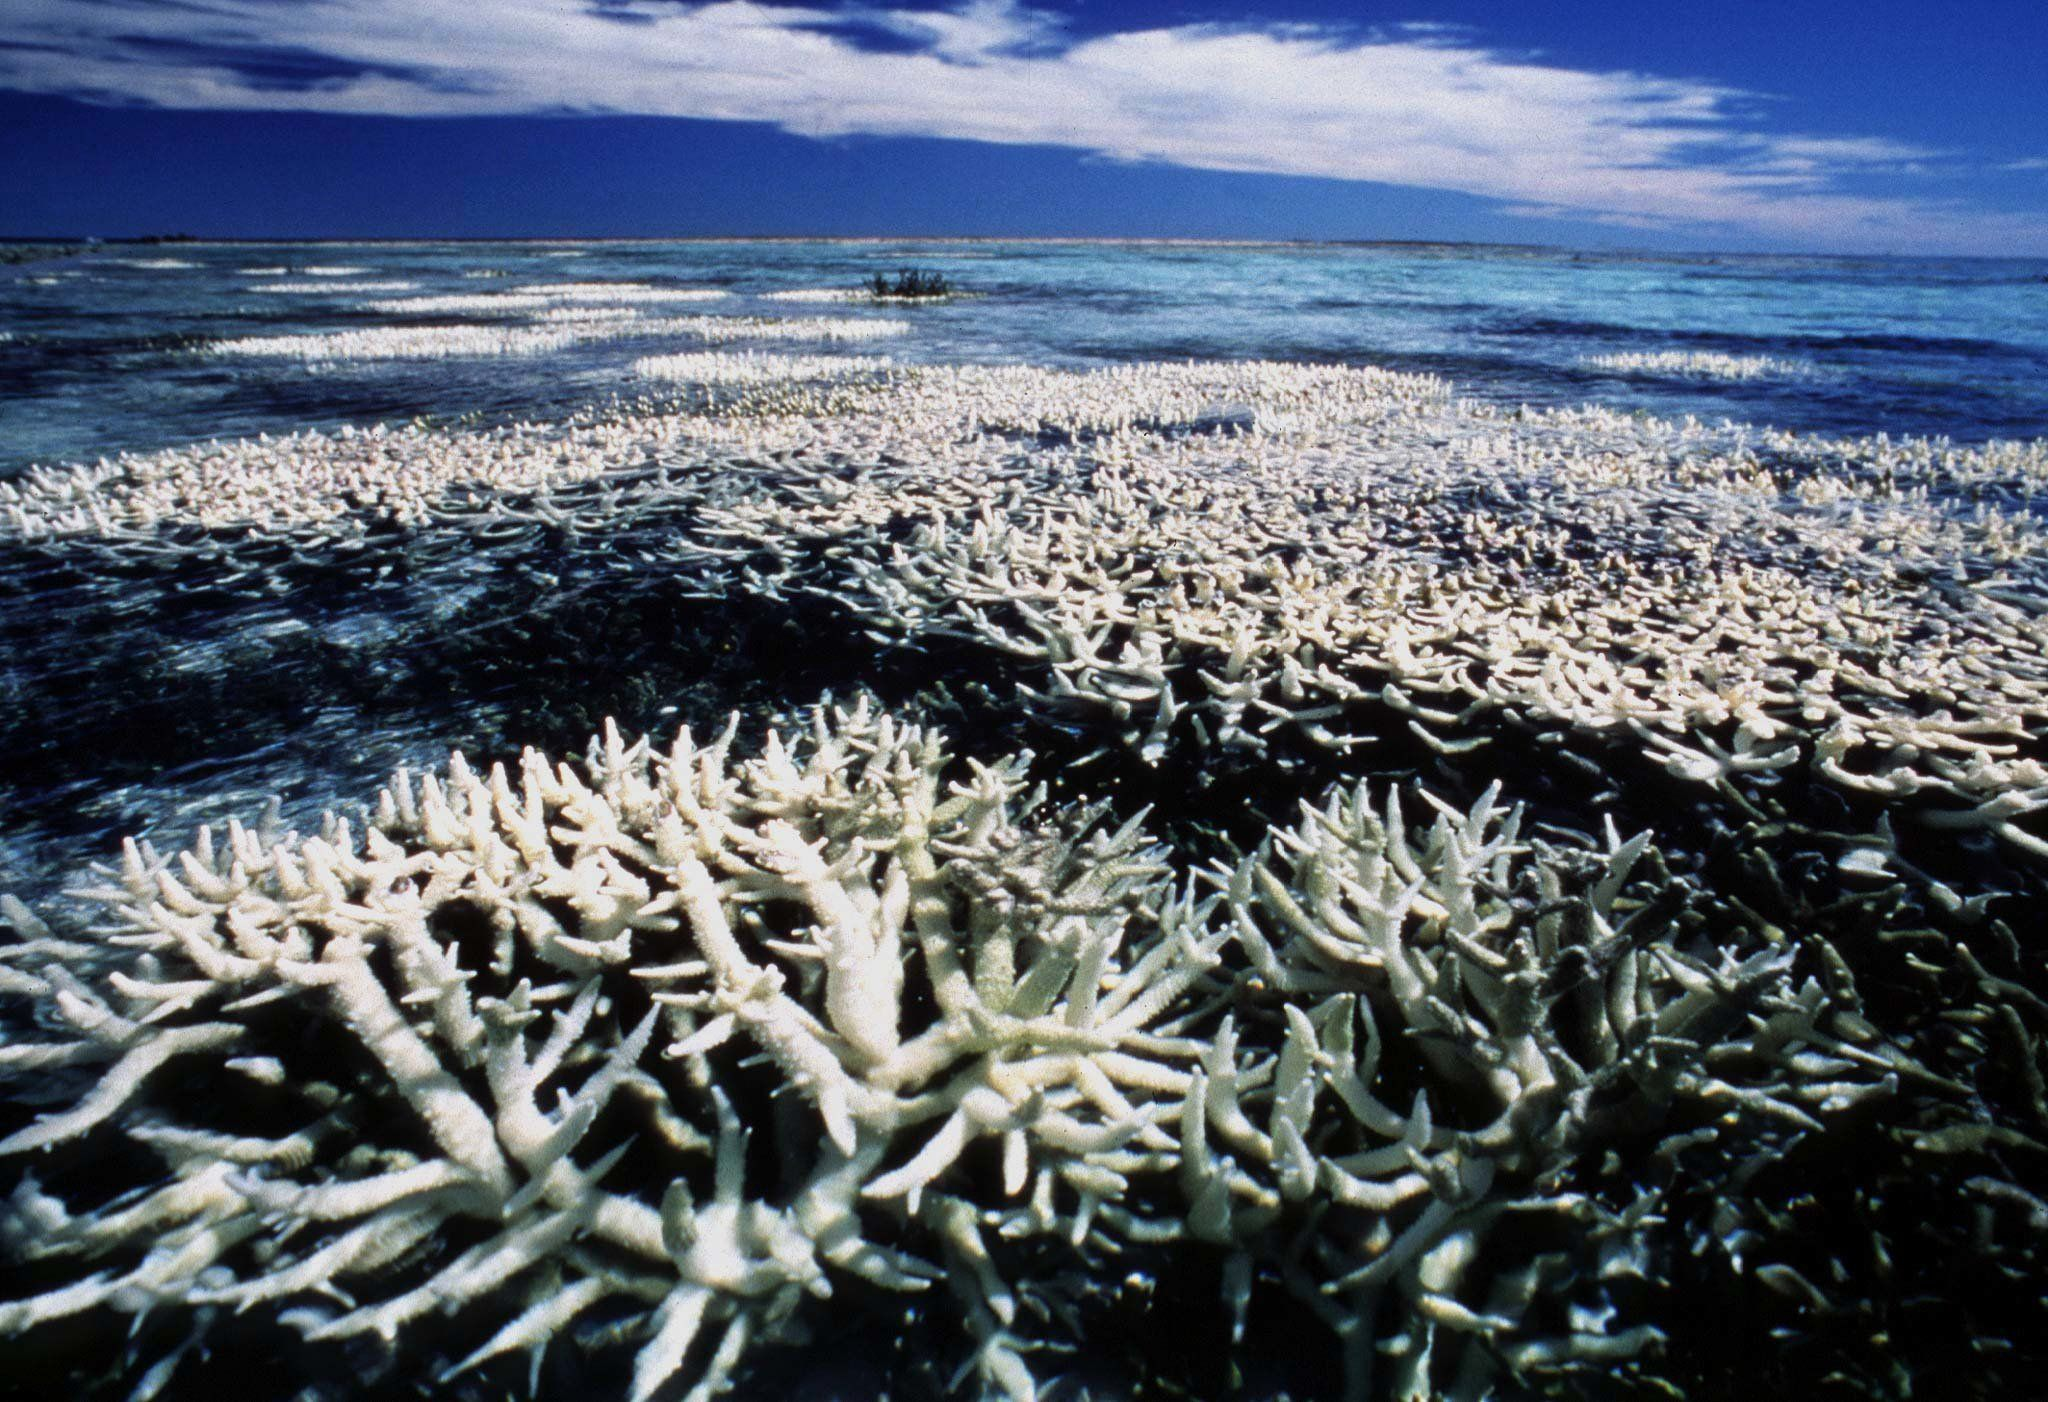 Coral Transplant Success Could Be A Ray Of Hope For The Great Barrier